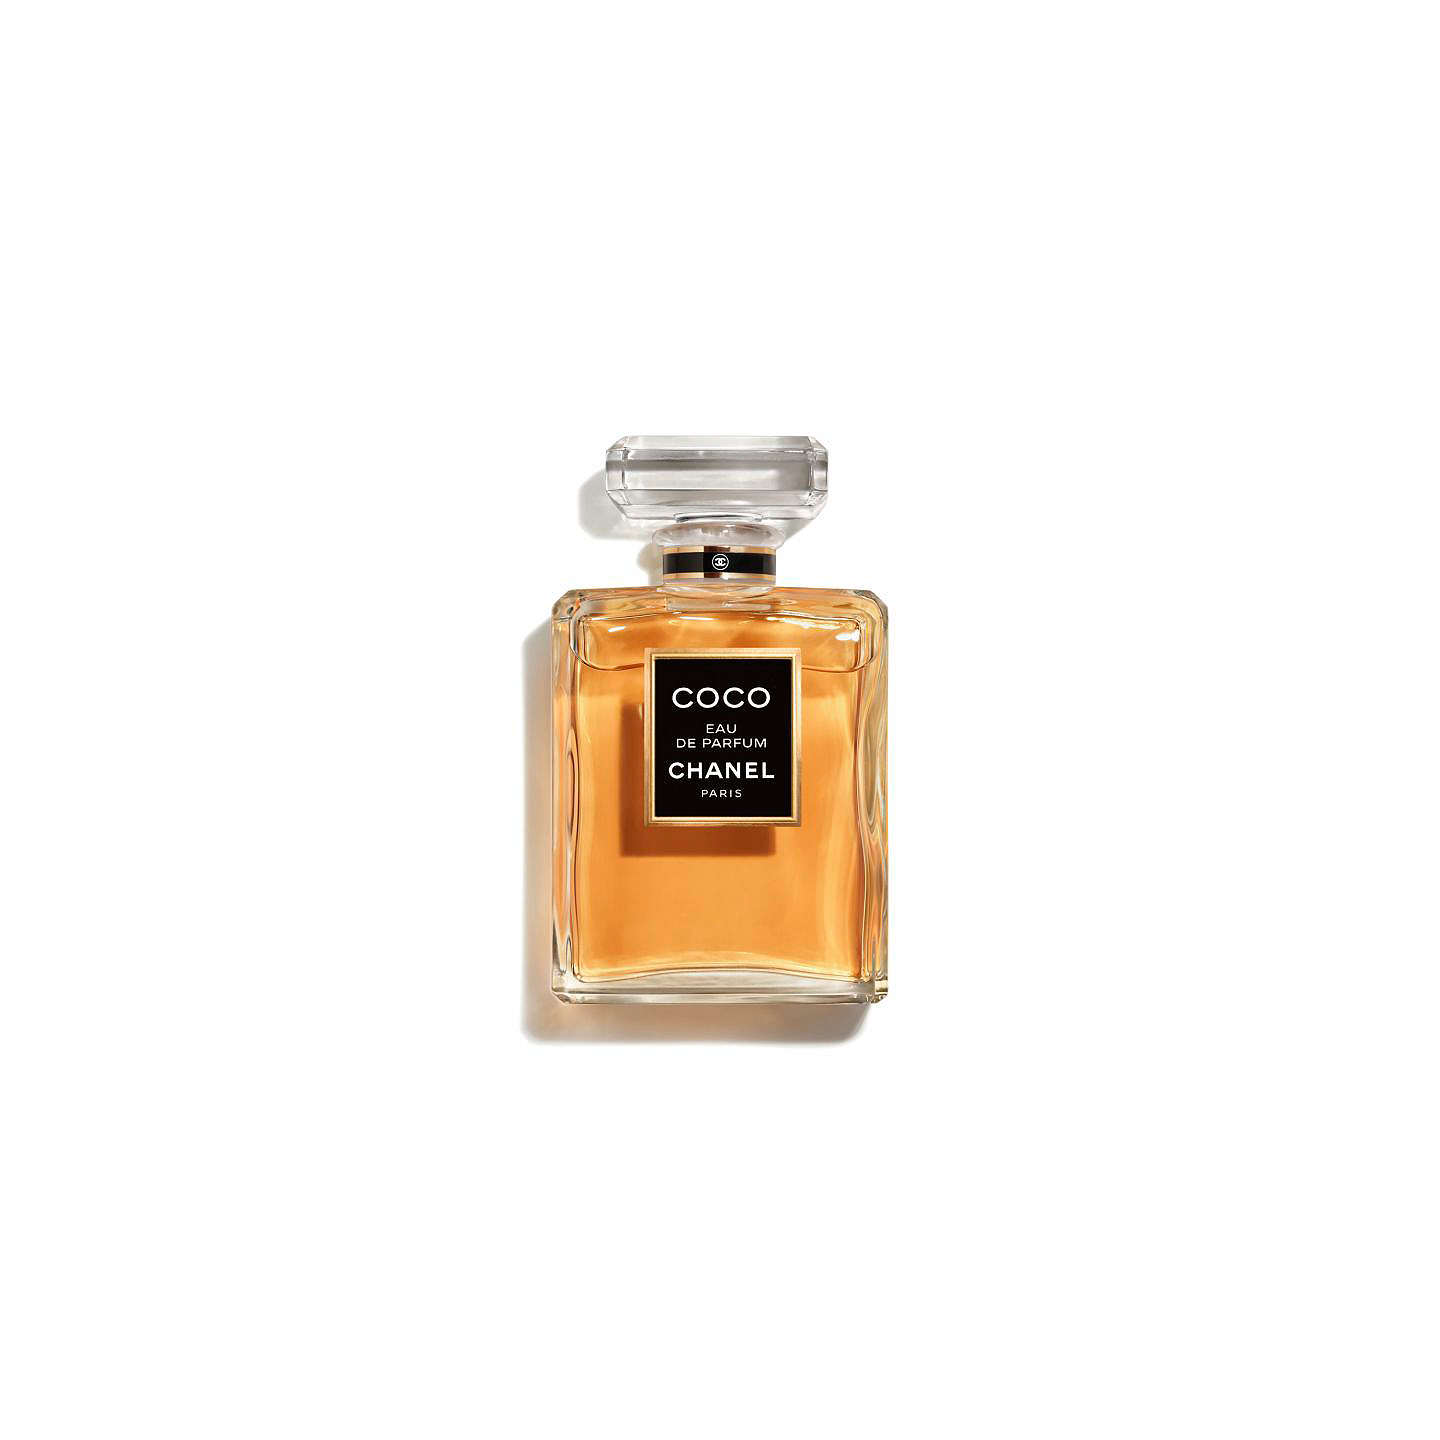 CHANEL COCO Eau de Parfum Spray at John Lewis